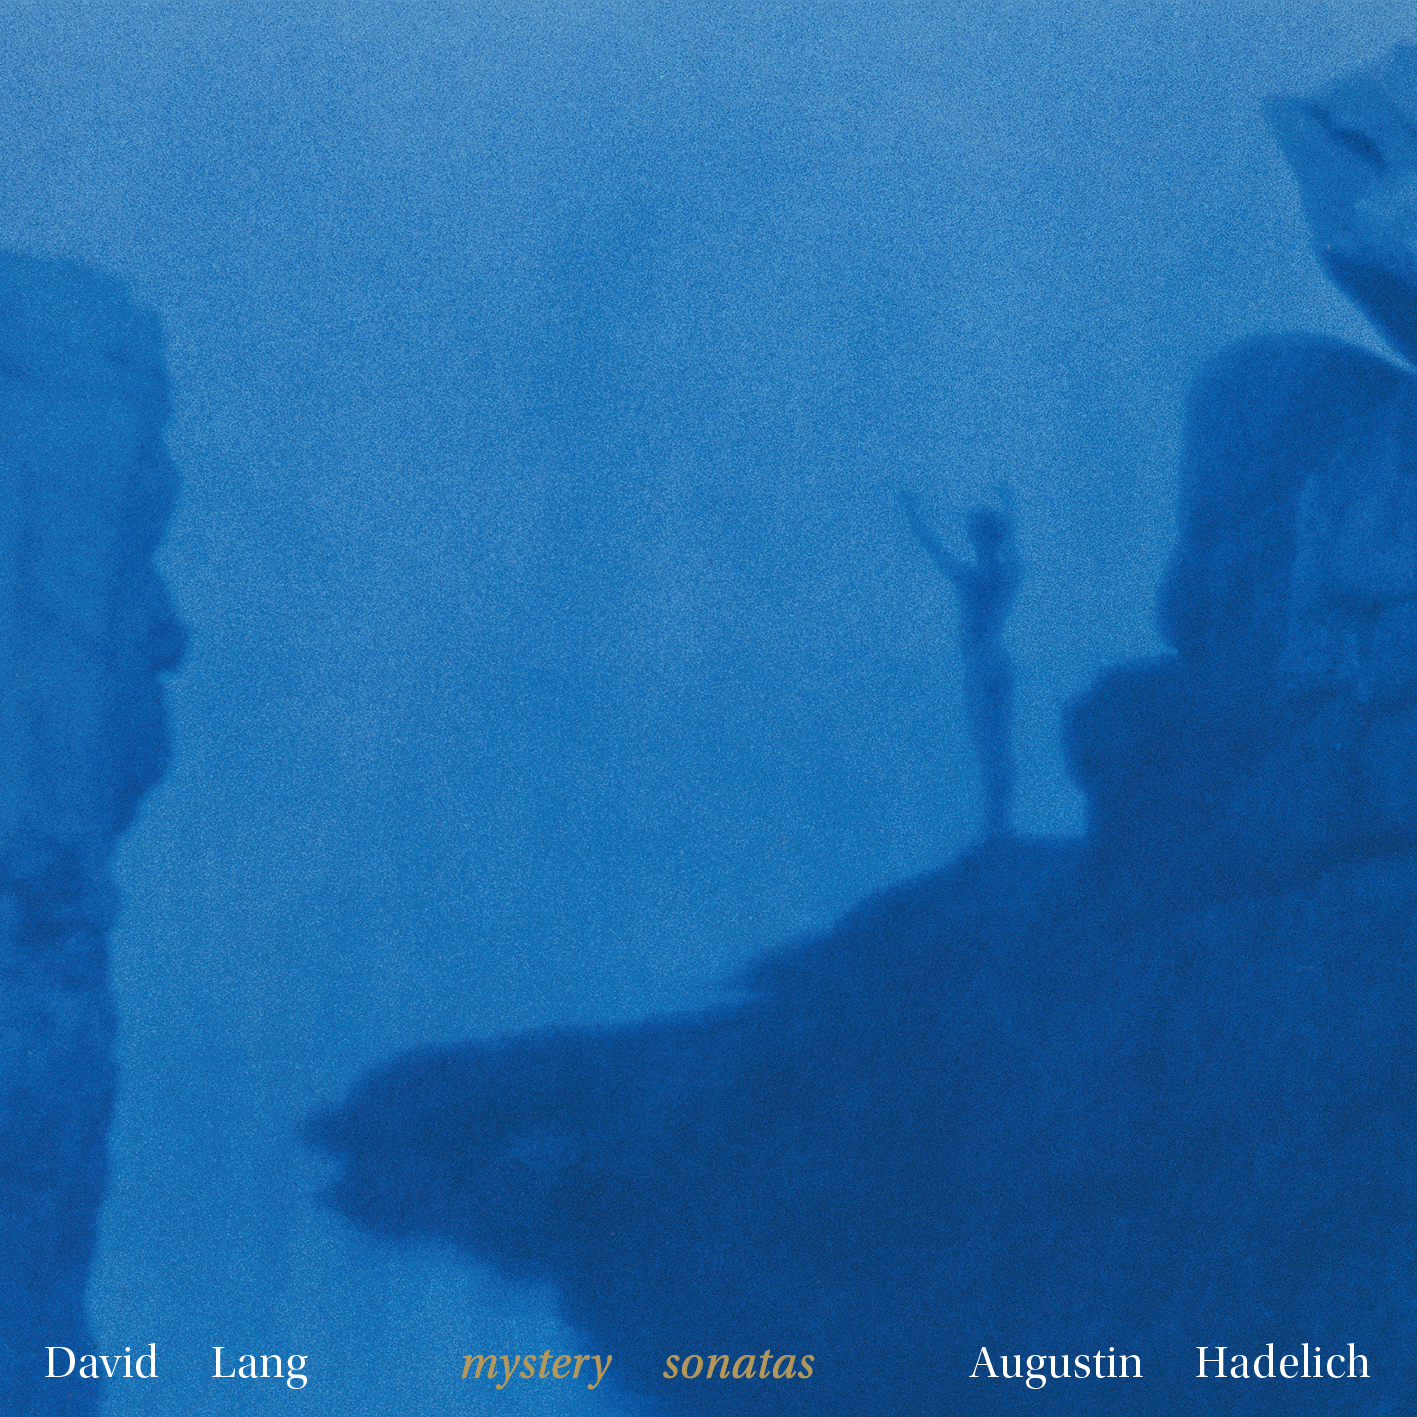 David Lang & Augustin Hadelich –  mystery sonatas